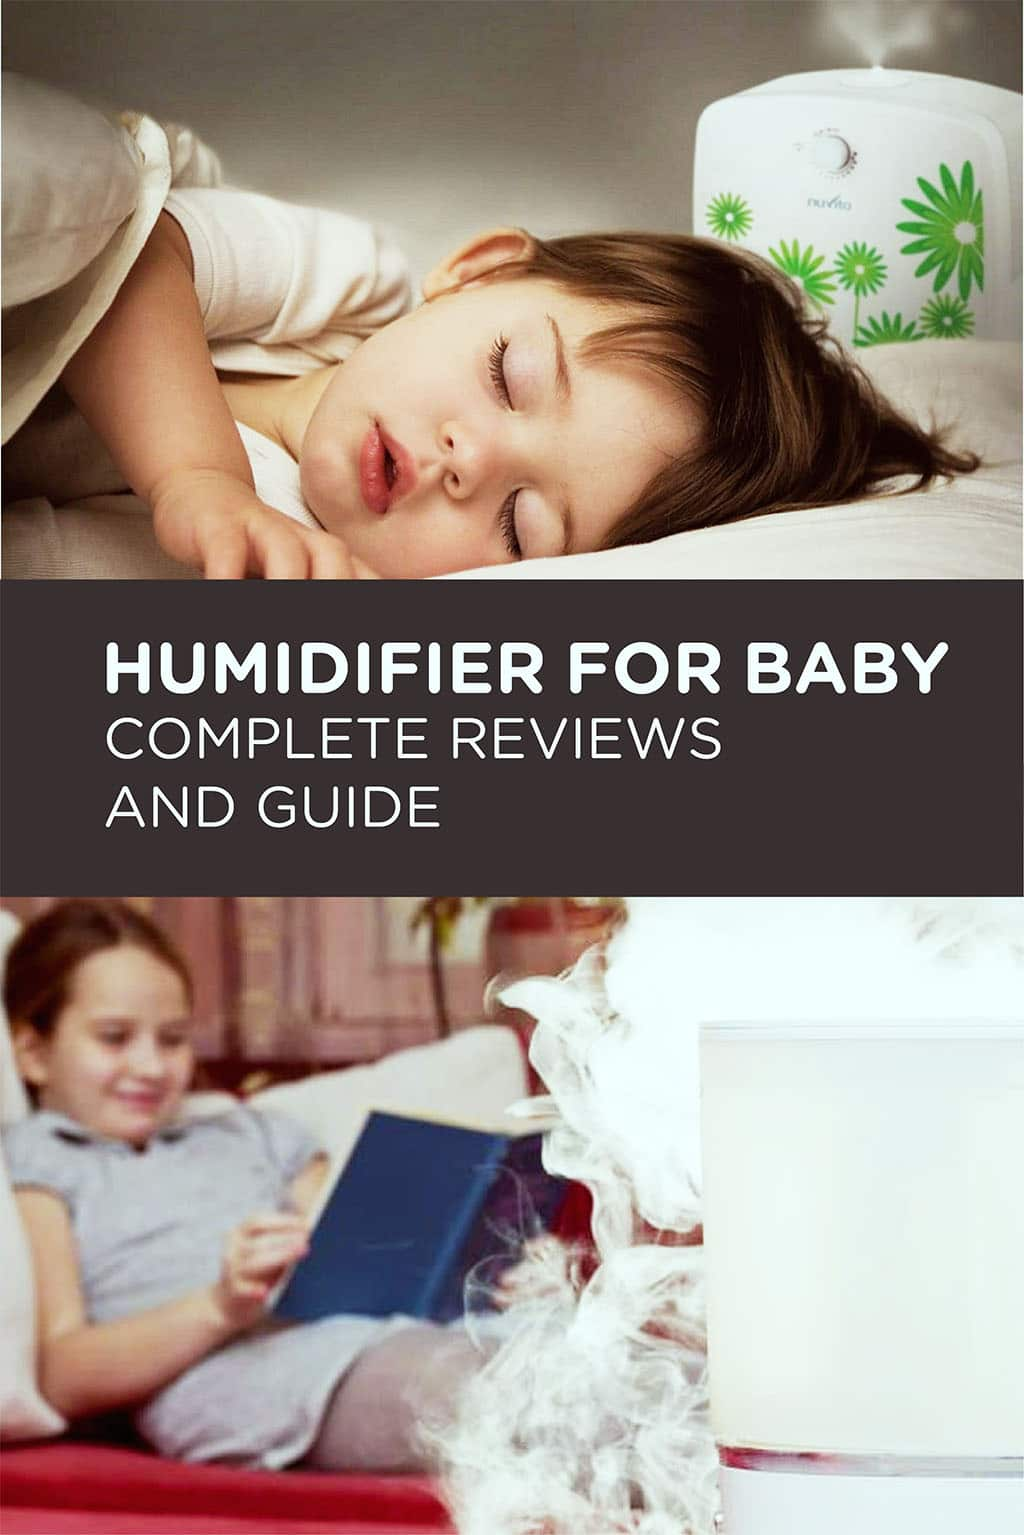 Humidifier for Baby -Complete Reviews and Guide